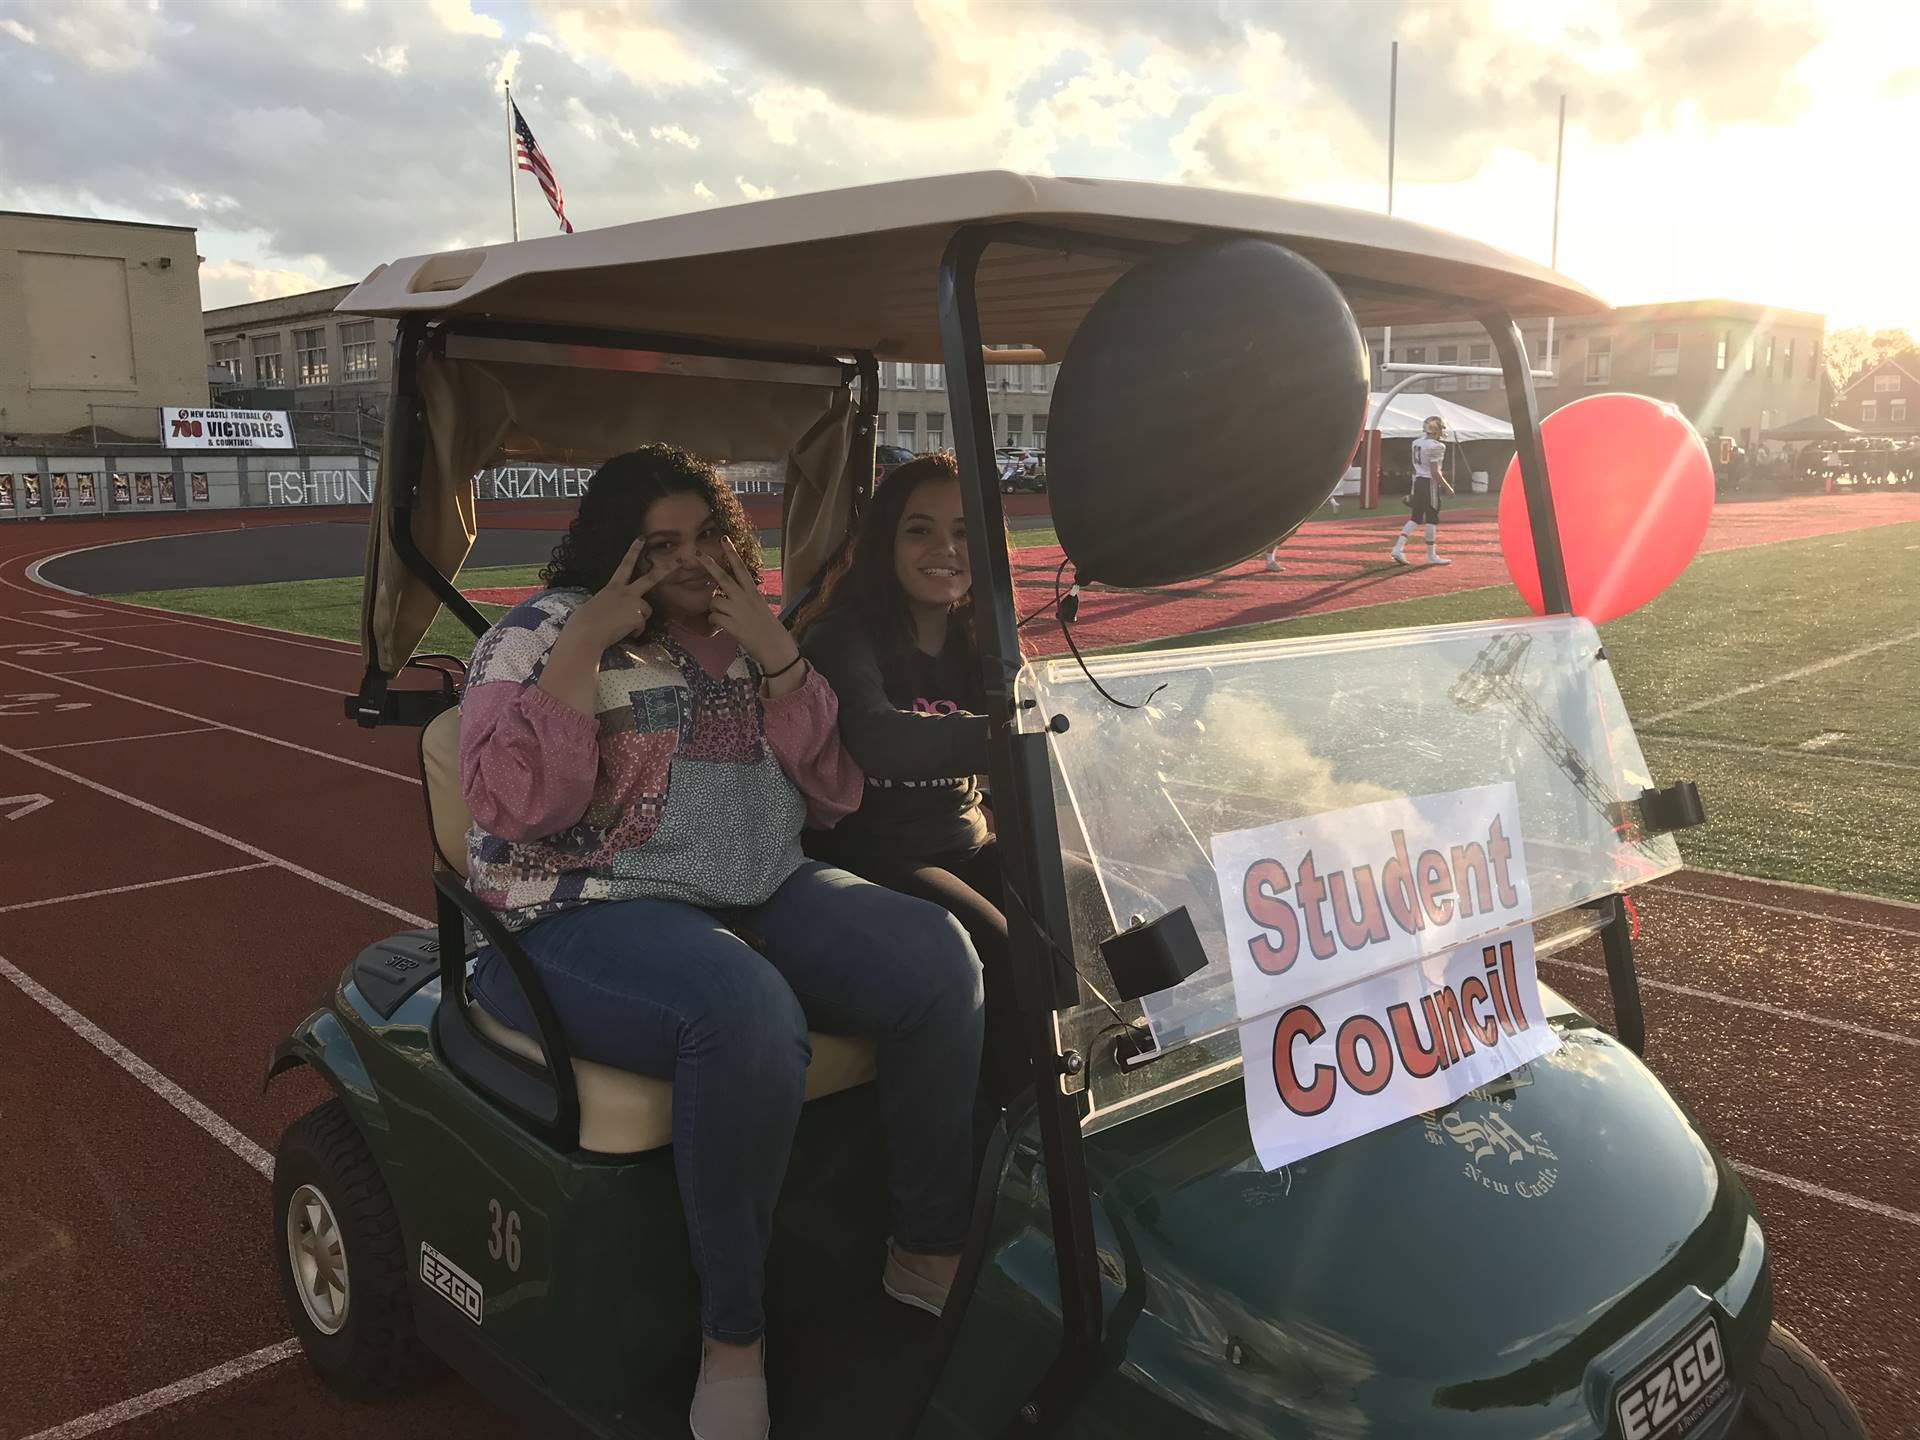 Student Council members Alexis Gish and Jasilyn Rankin